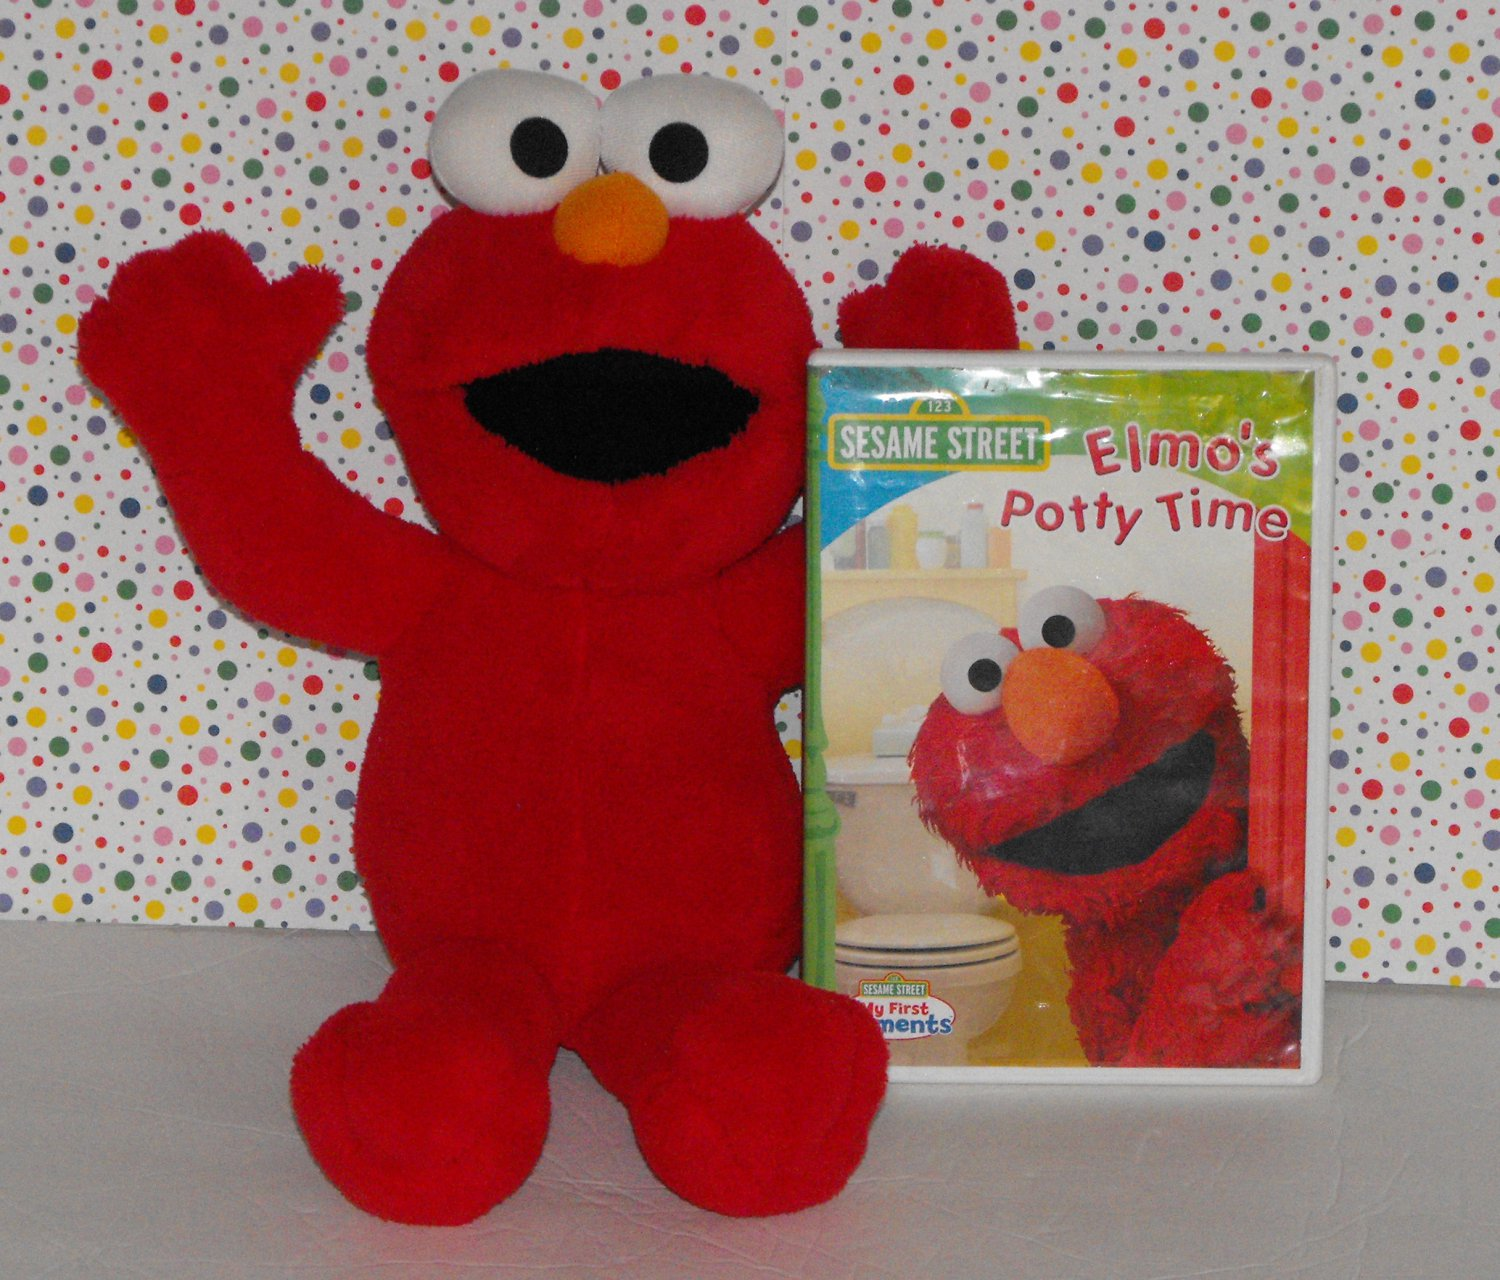 sold potty time elmo doll and potty time dvd